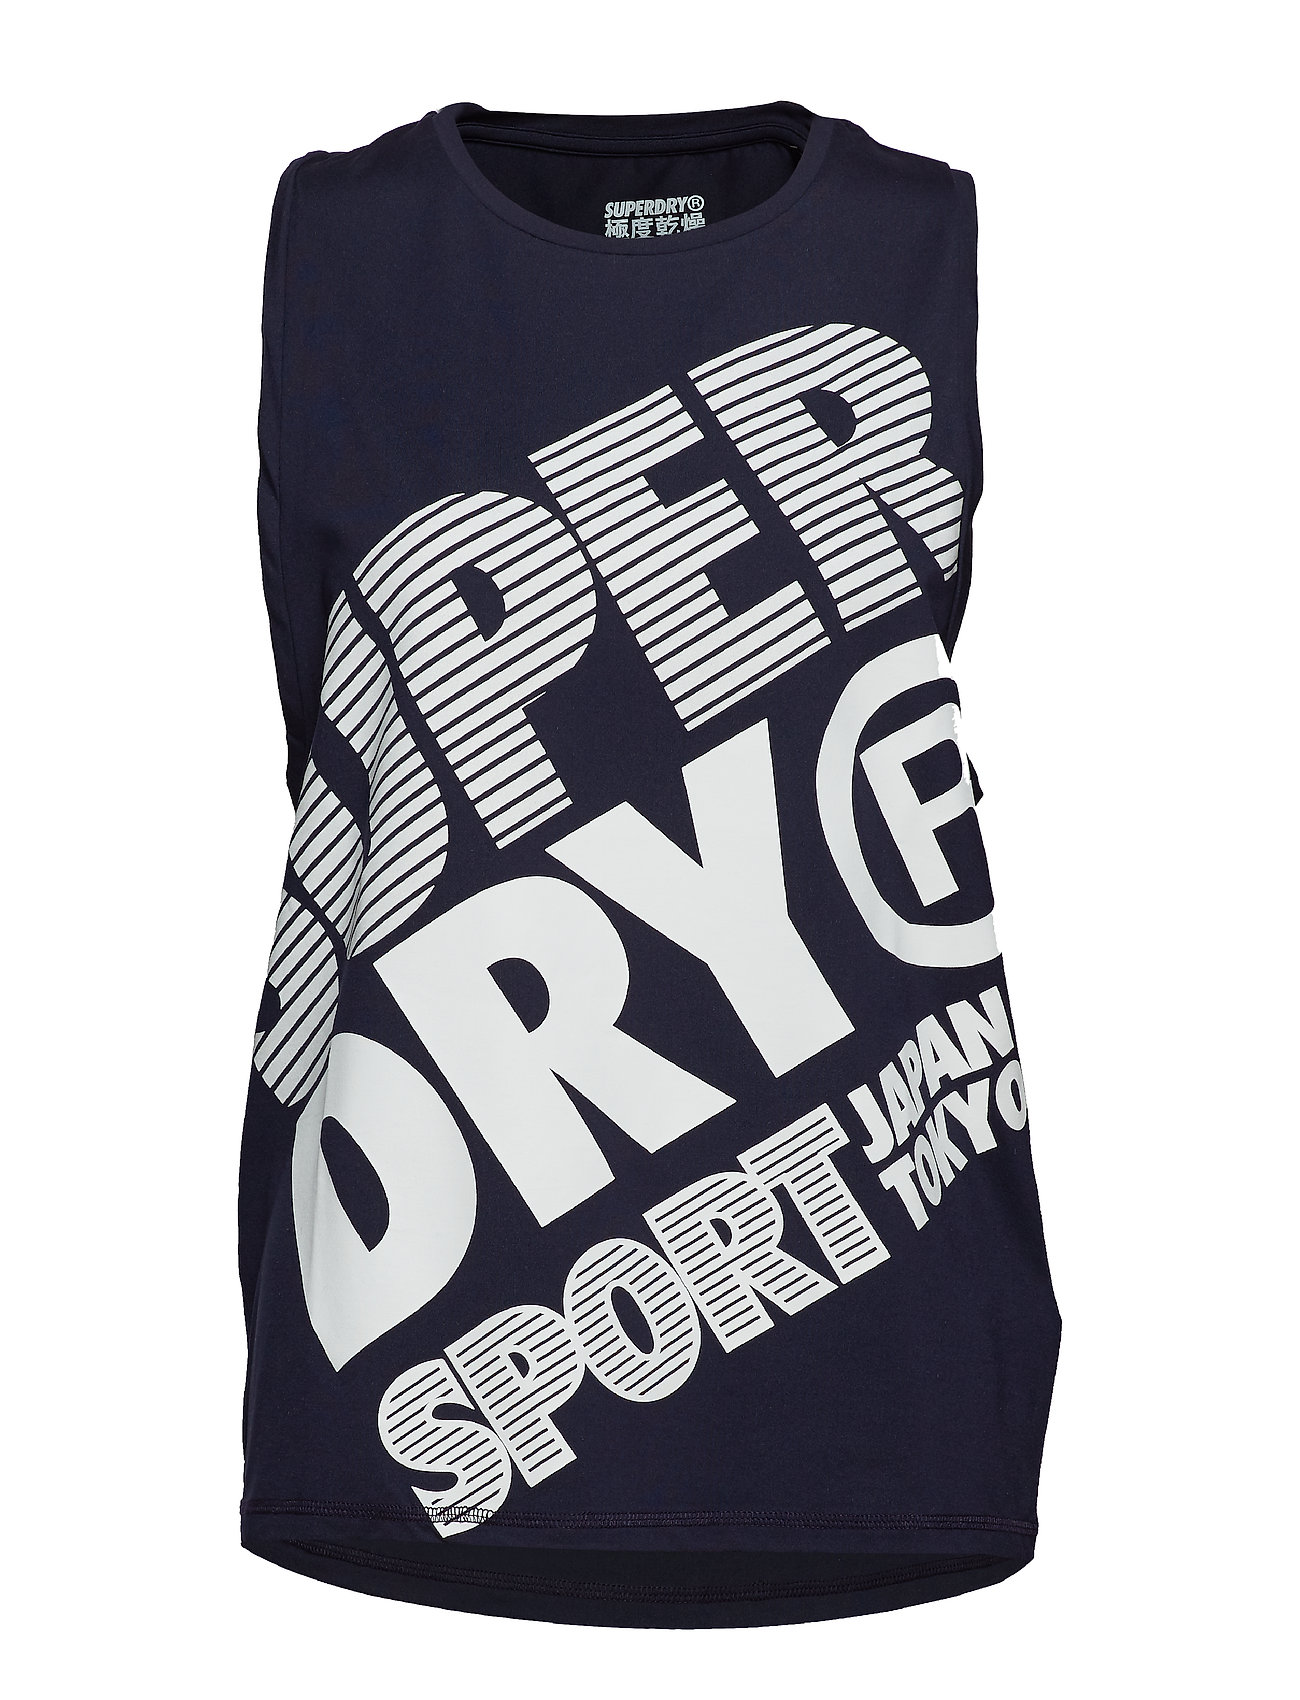 Vestflash NavySuperdry Sport Edition Japan Lazer uFK1cT3lJ